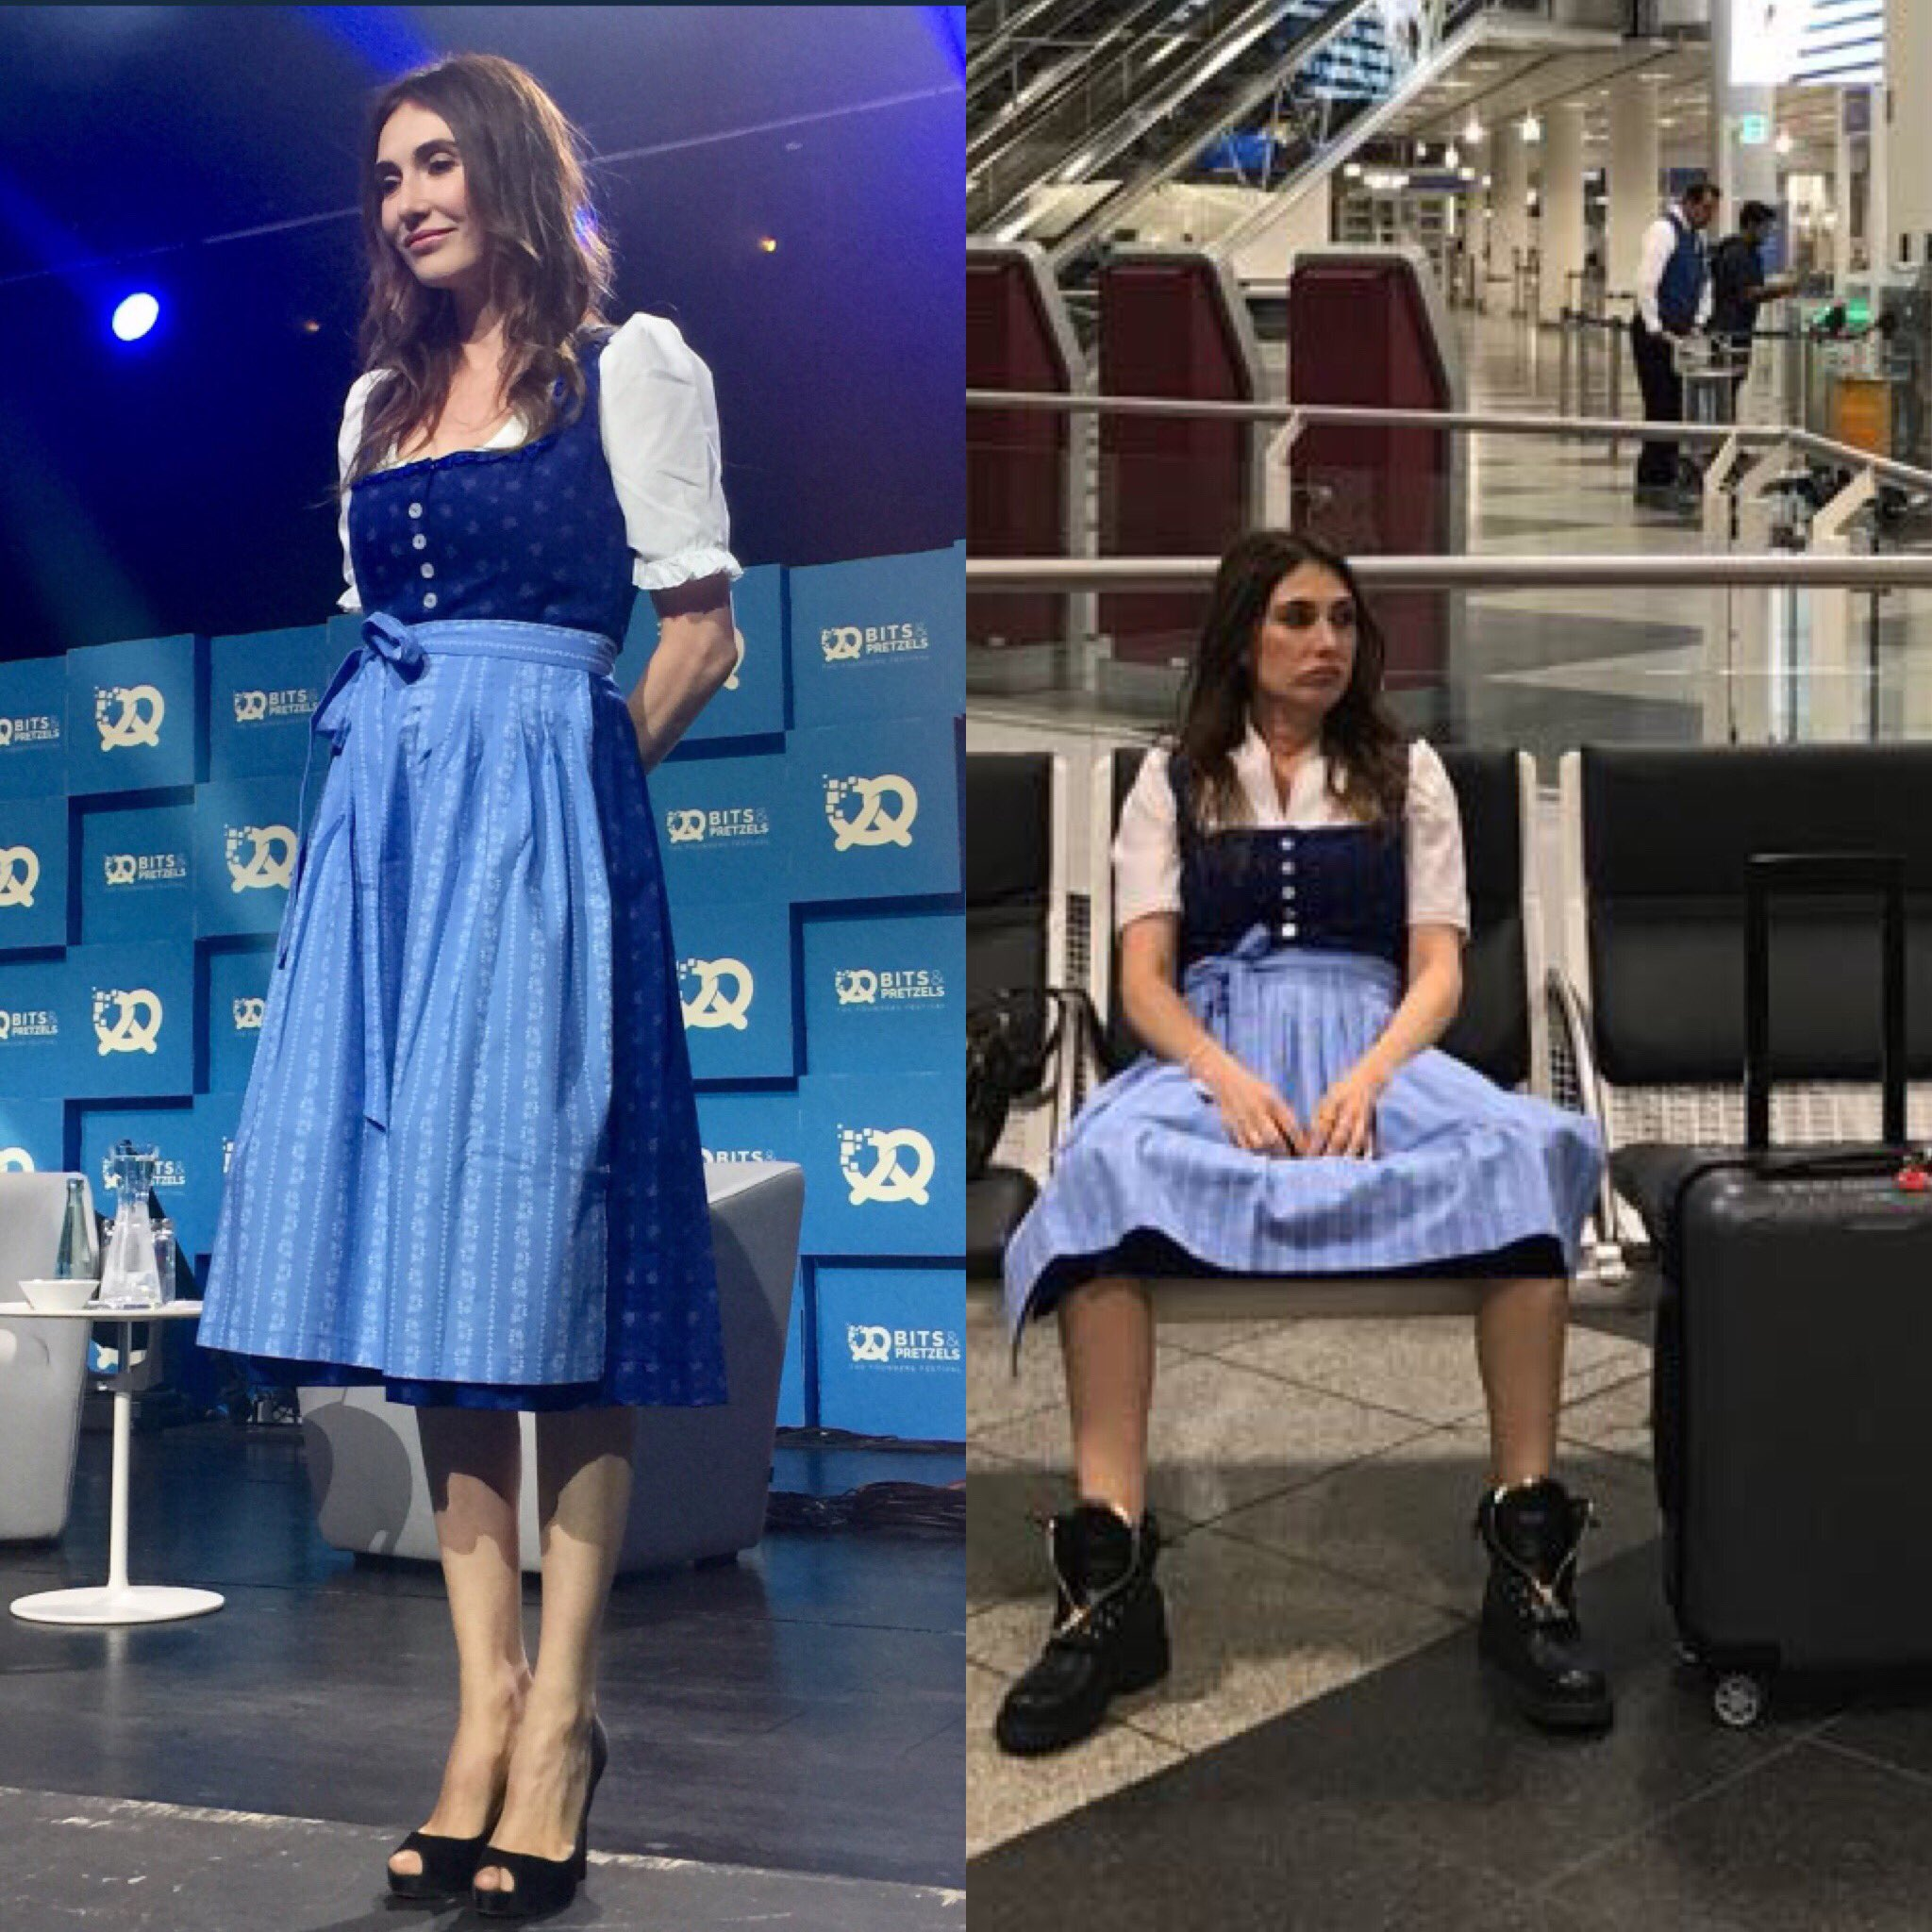 Before and after. #oktoberfest2017 #bits17 https://t.co/OvpmlDOeD0